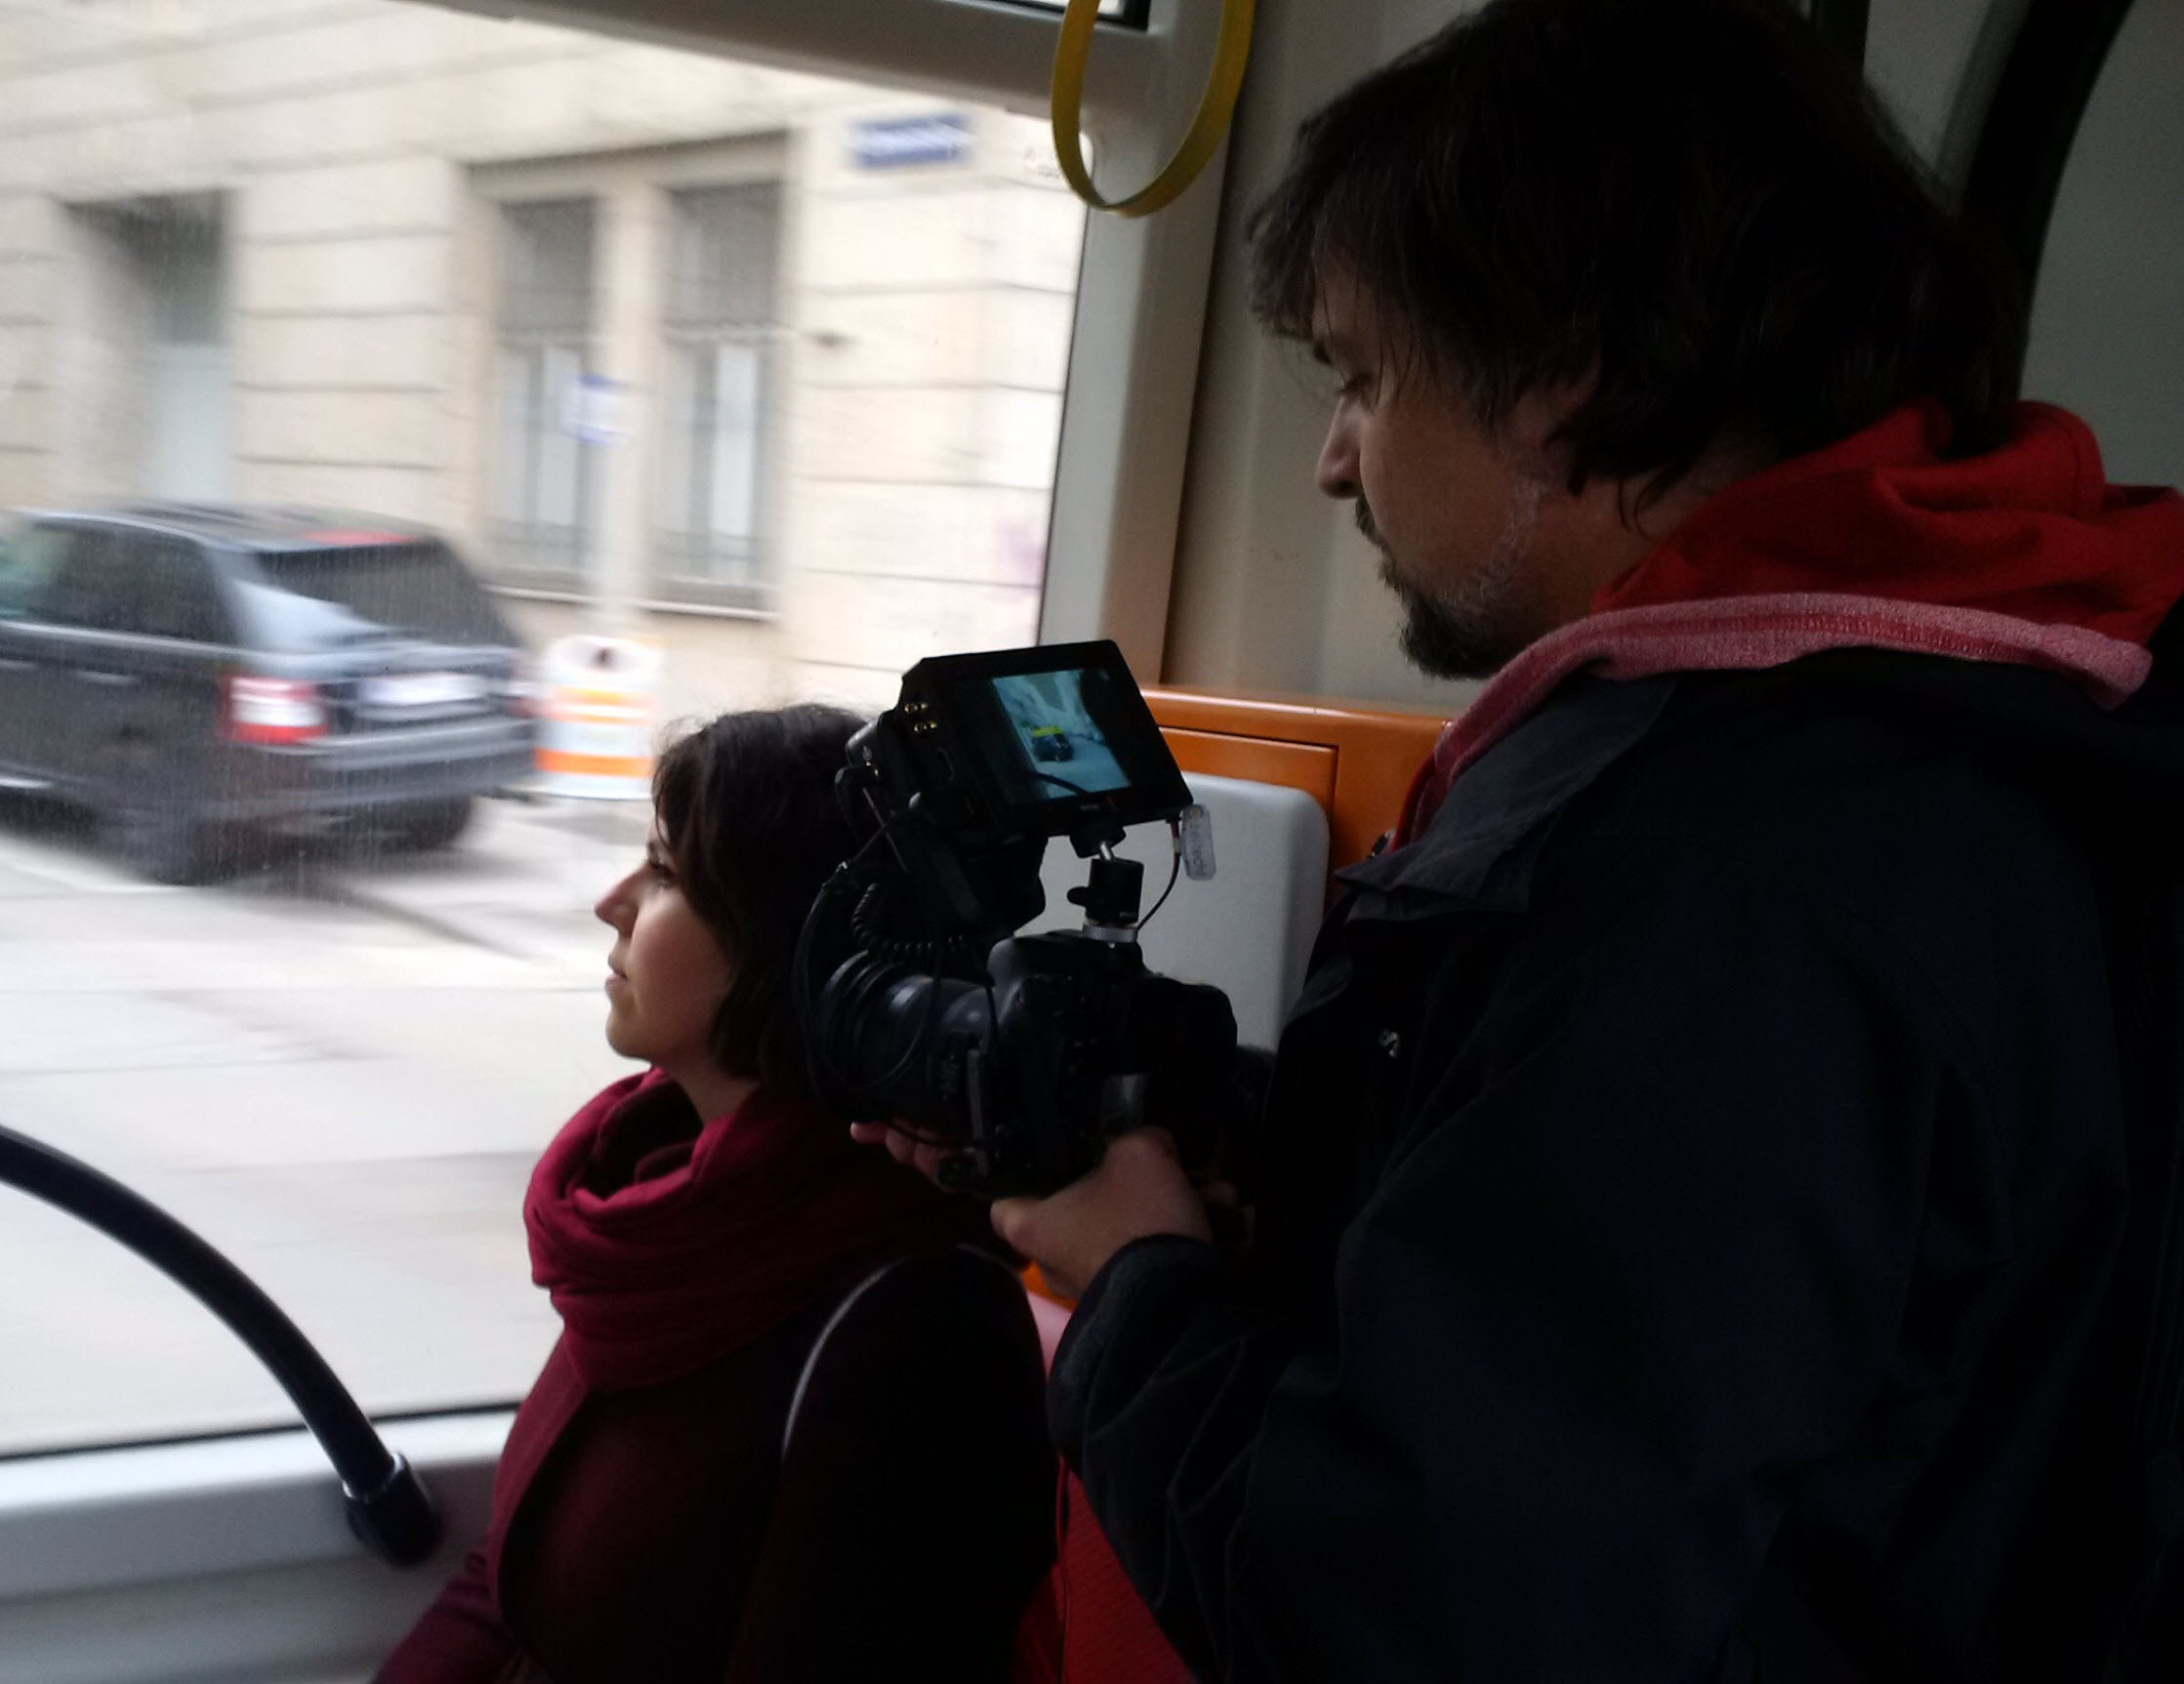 Filming on the road in a Viennese tram